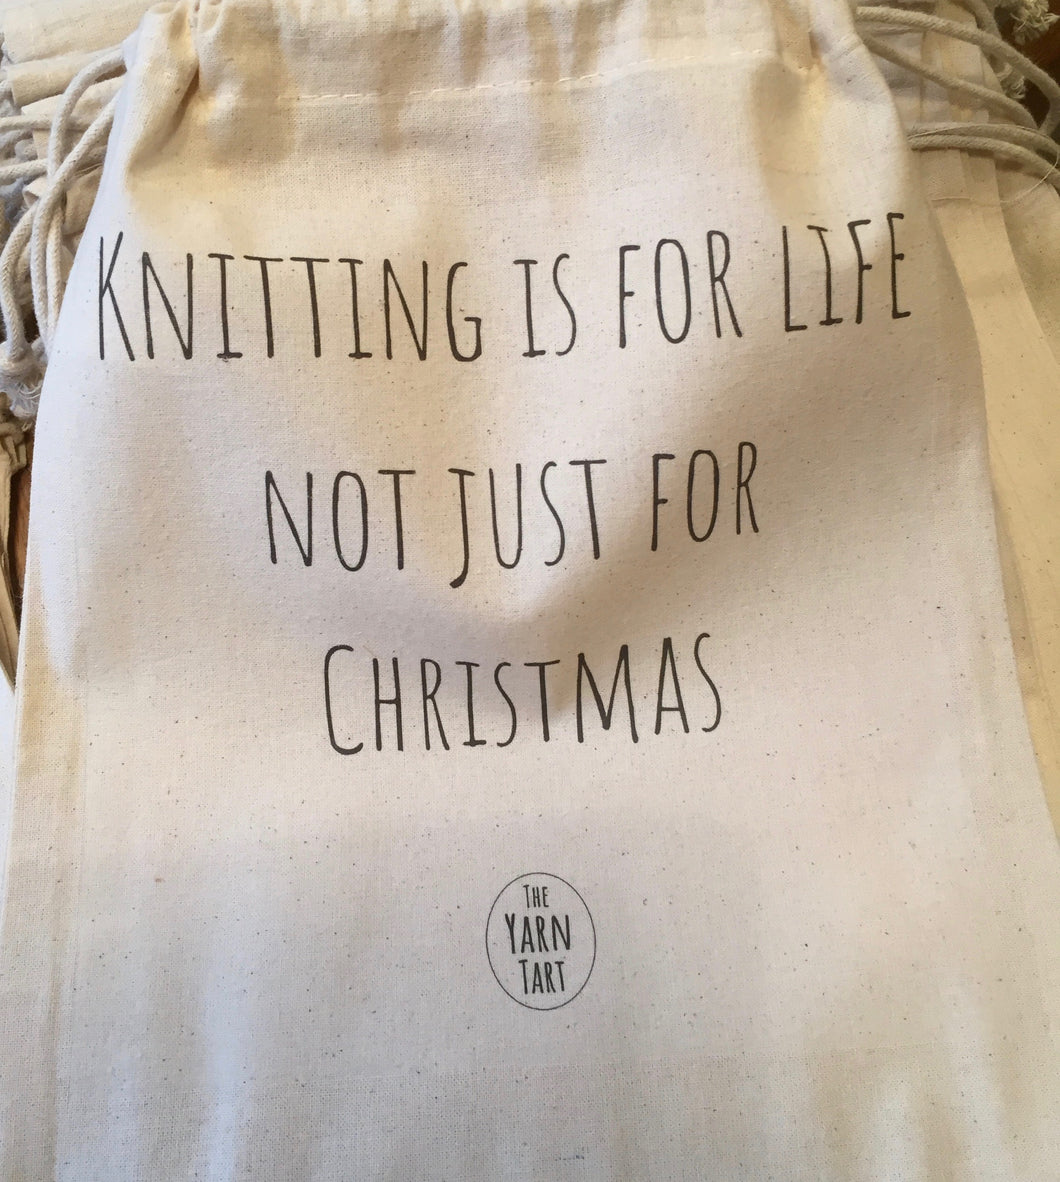 Knitting is for Life not just for christmas